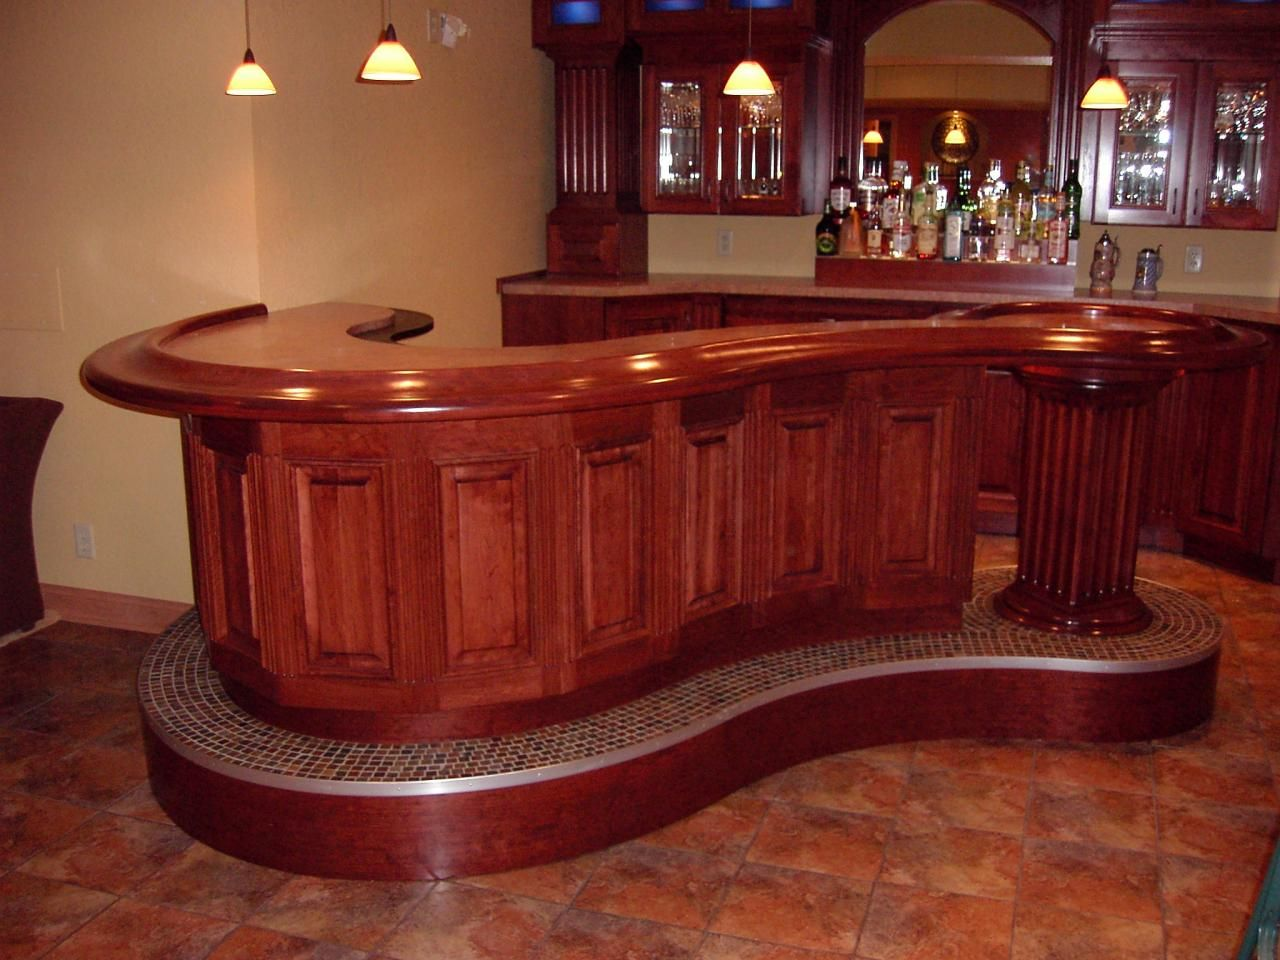 Top 10 home bars wood bars bar and woods for Wooden bar design